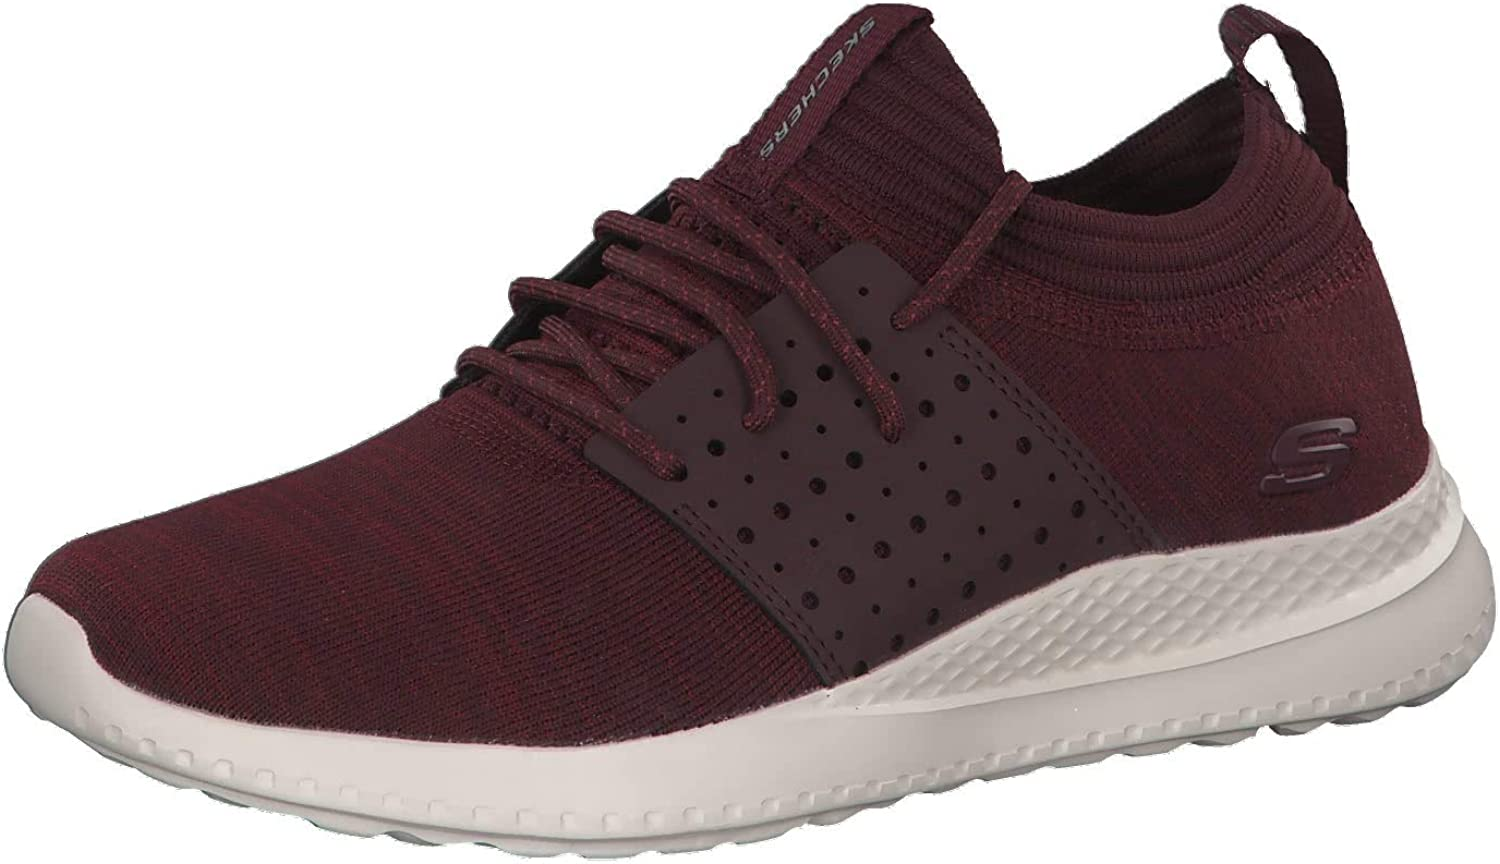 Skechers Mens Burgundy Matera Knocto Trainers